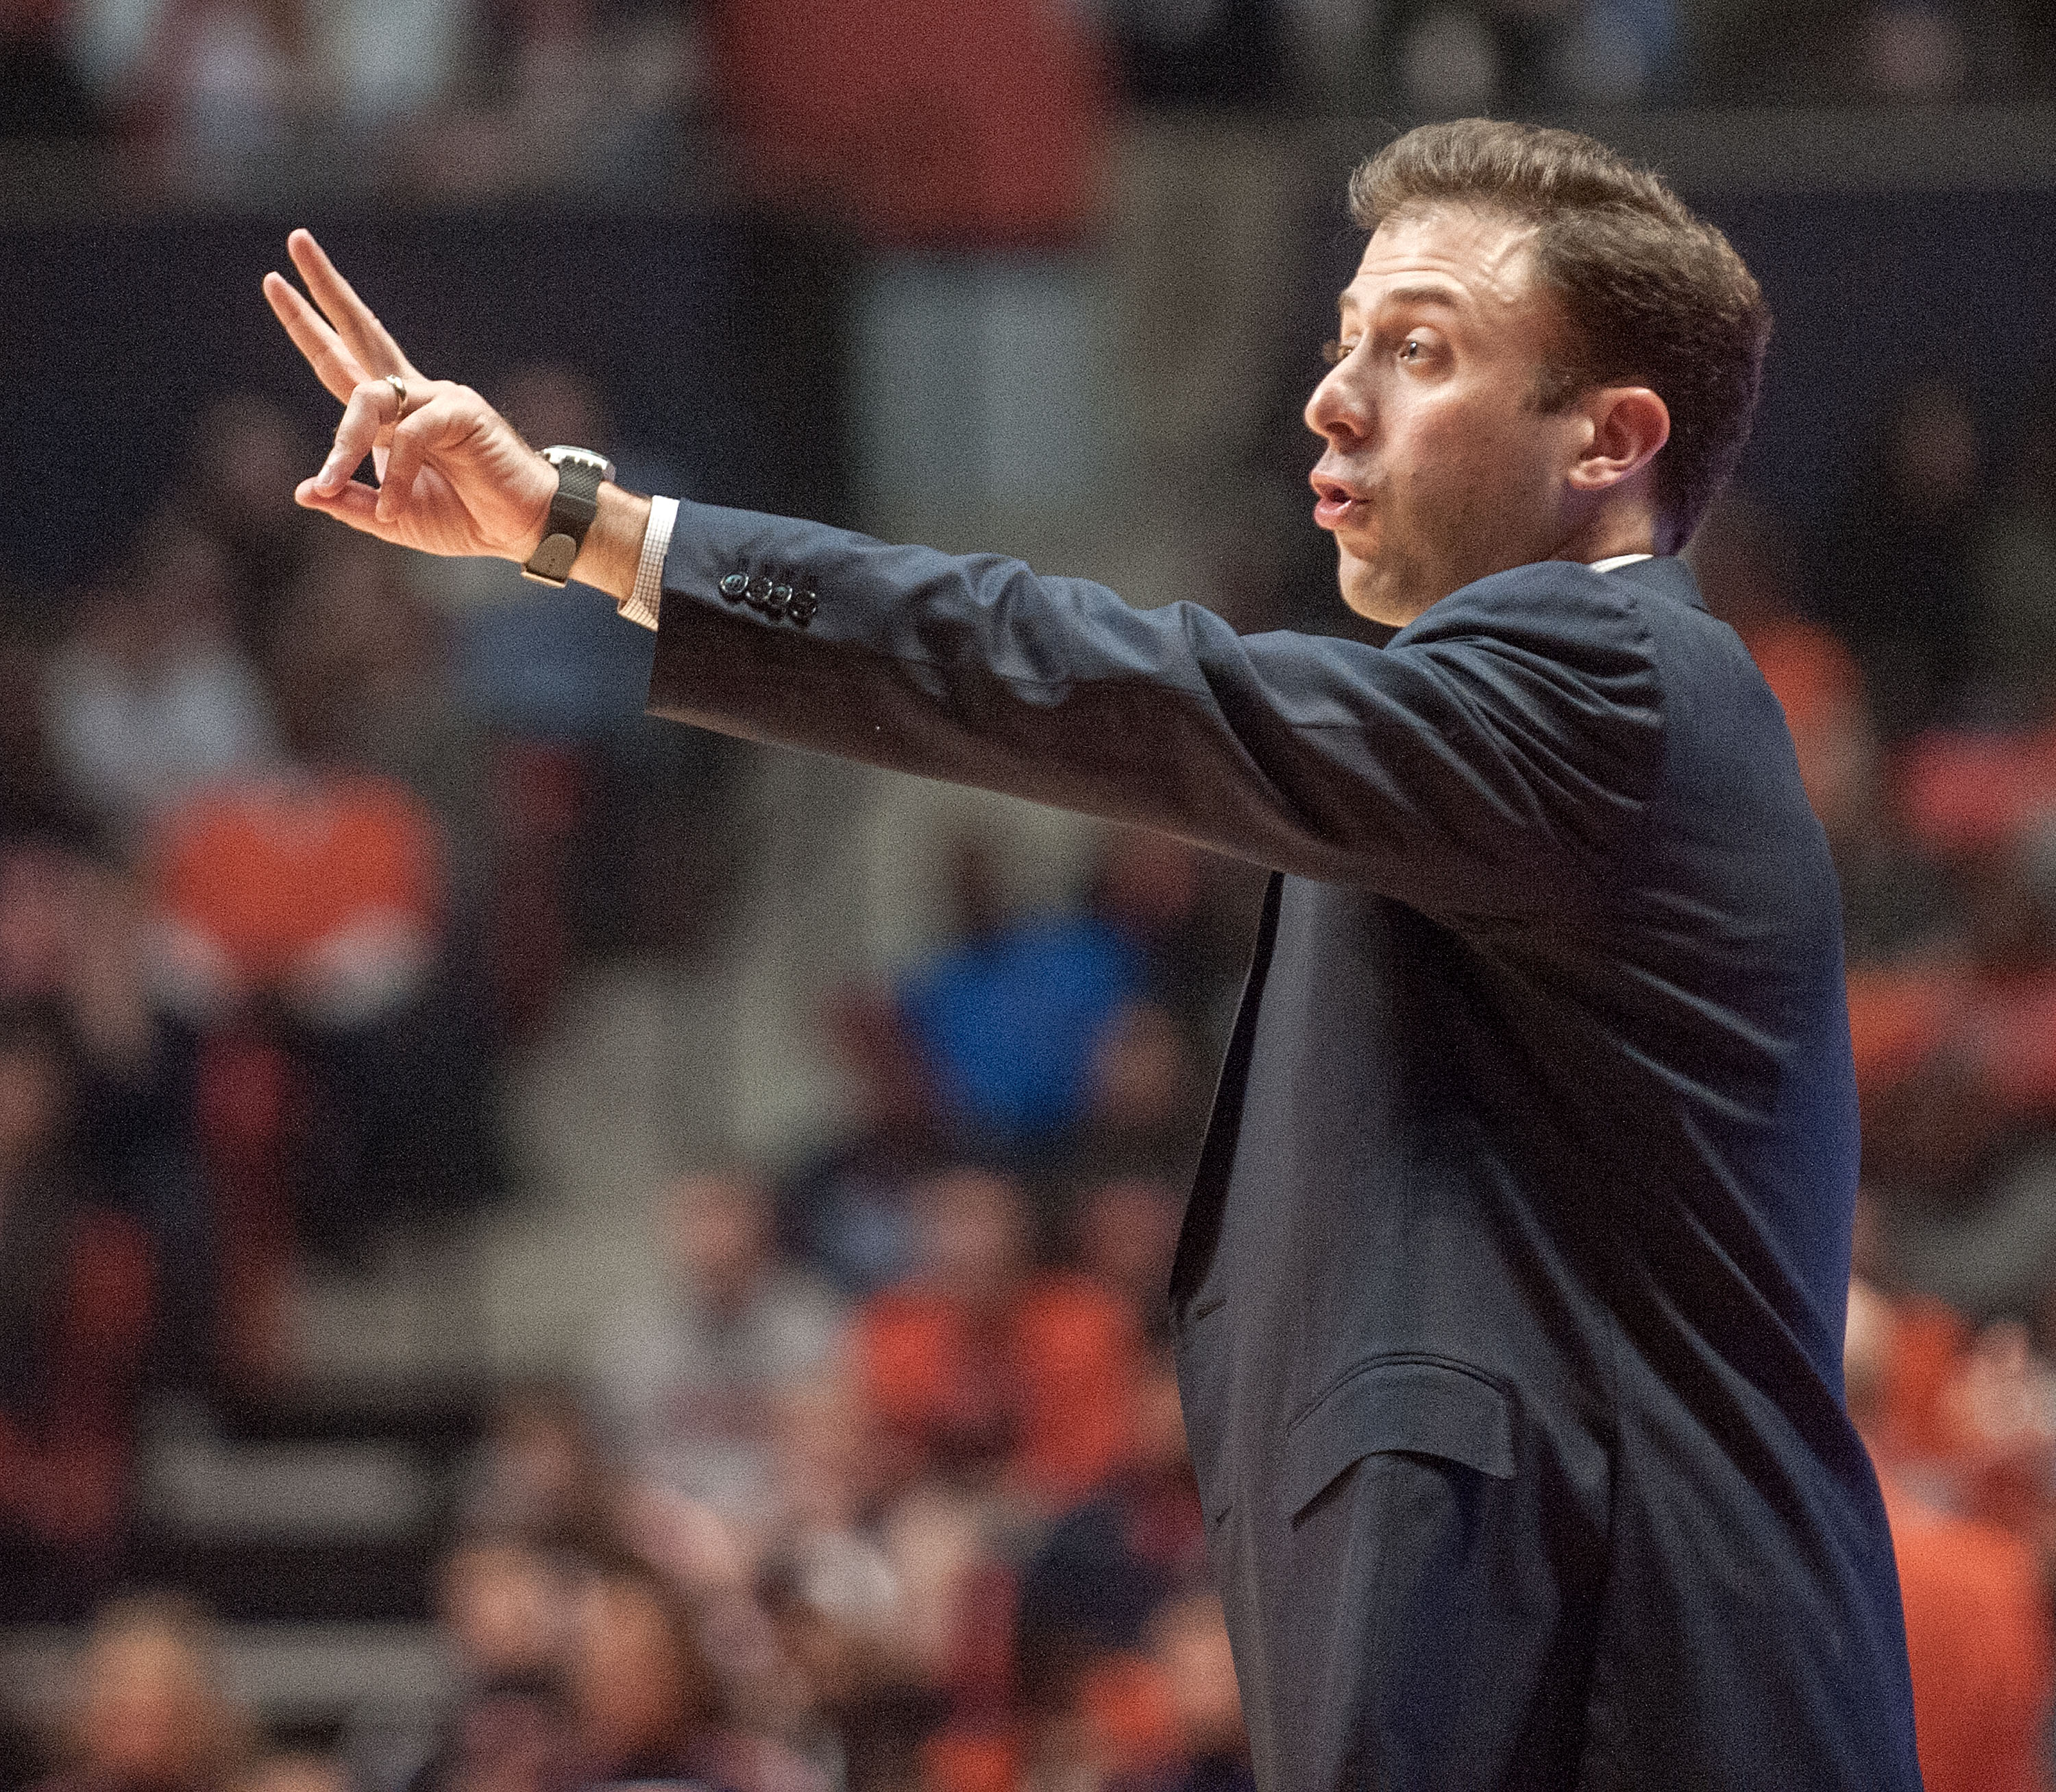 Minnesota head coach Richard Pitino directs his team during the first half of an NCAA college basketball game against Illinois in Champaign, Ill., Sunday Feb. 28, 2016. (AP Photo/Rick Danzl)